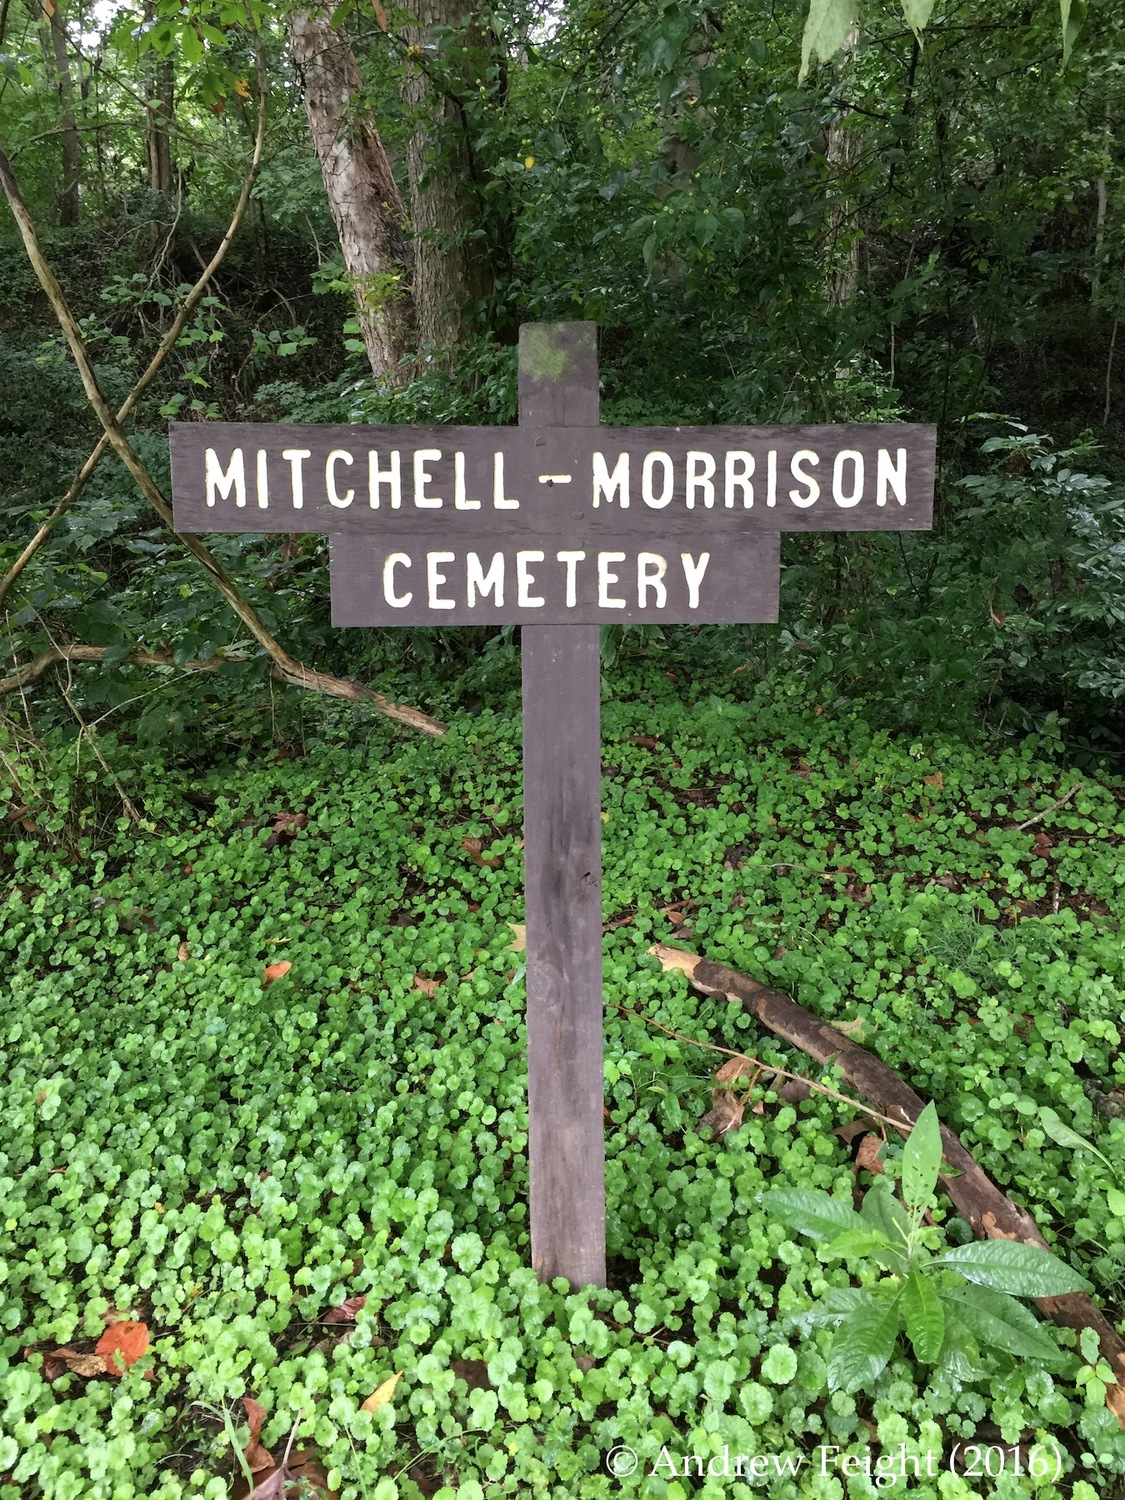 Mitchell-Morrison Cemetery, Moore's Run, Shawnee Backcountry Management Area, Shawnee State Forest, Scioto County, Ohio